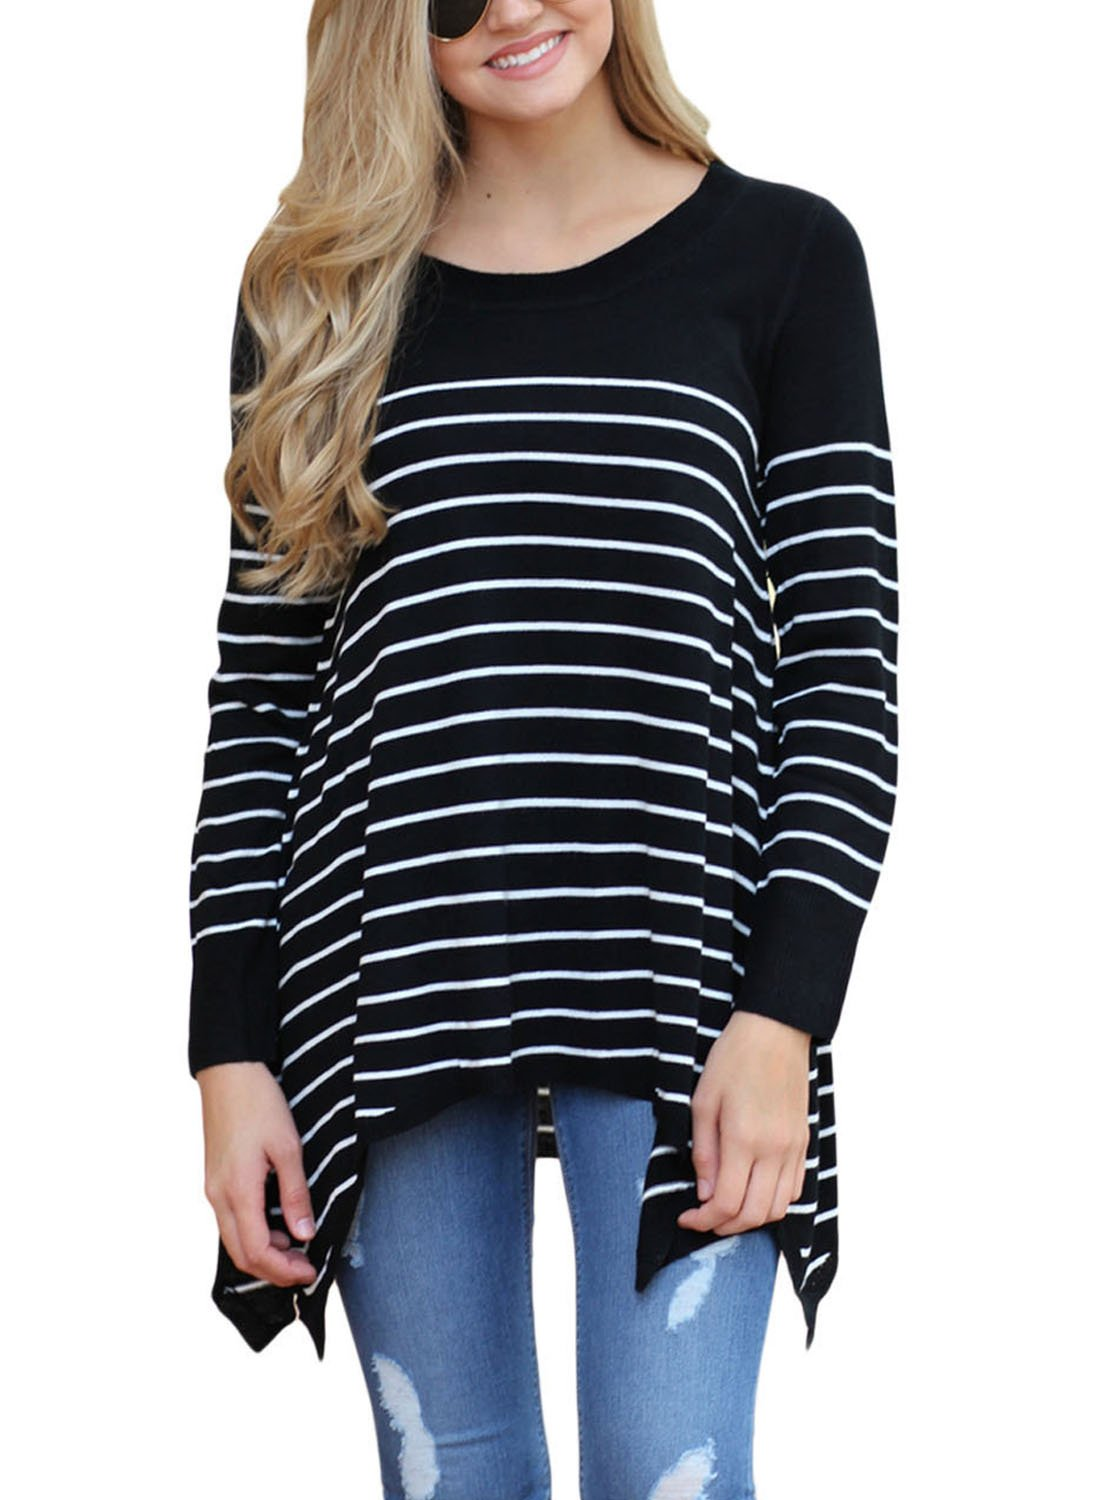 Sidefeel Women Round Neck Stripes Loose Knit Sweater Pullover Tops X-Large Black